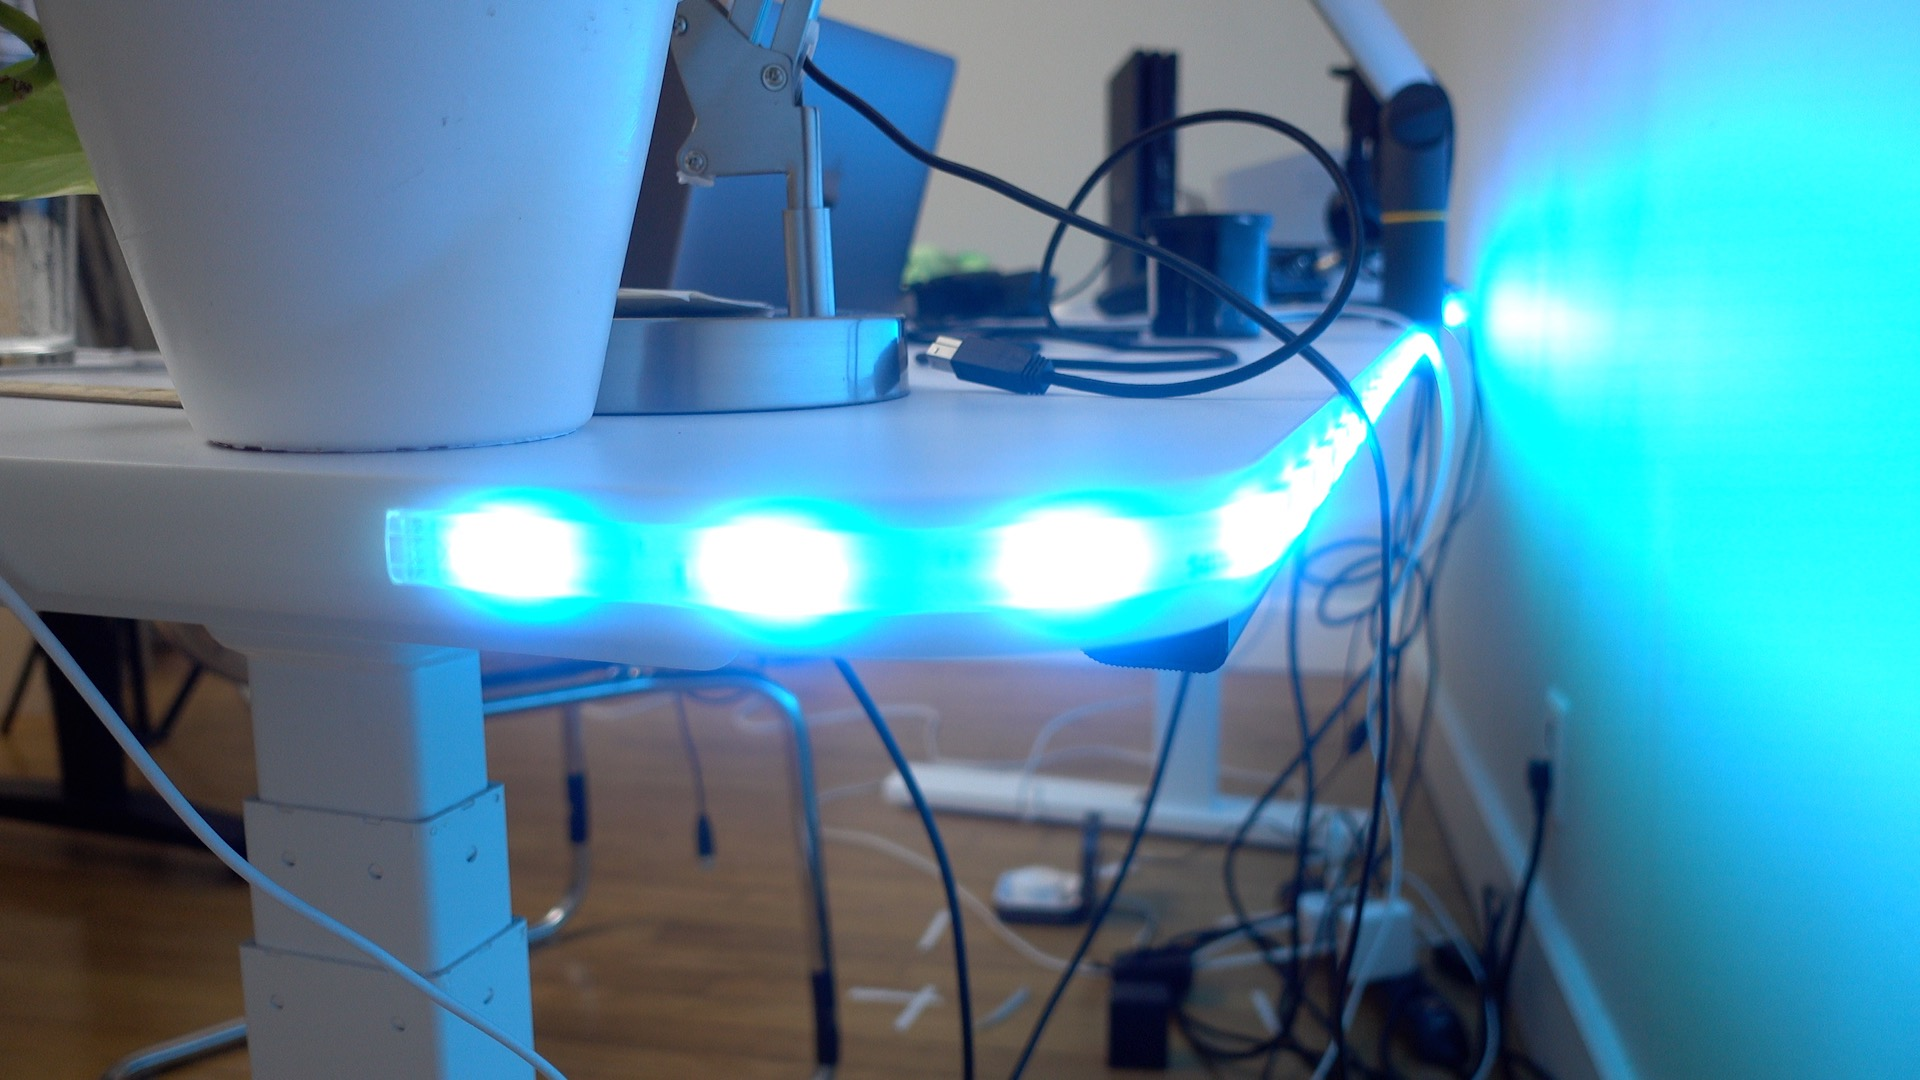 Philips Hue Led Lightstrip Plus Hands On Philips Hue Lightstrip Plus Gives You Iphone Controlled